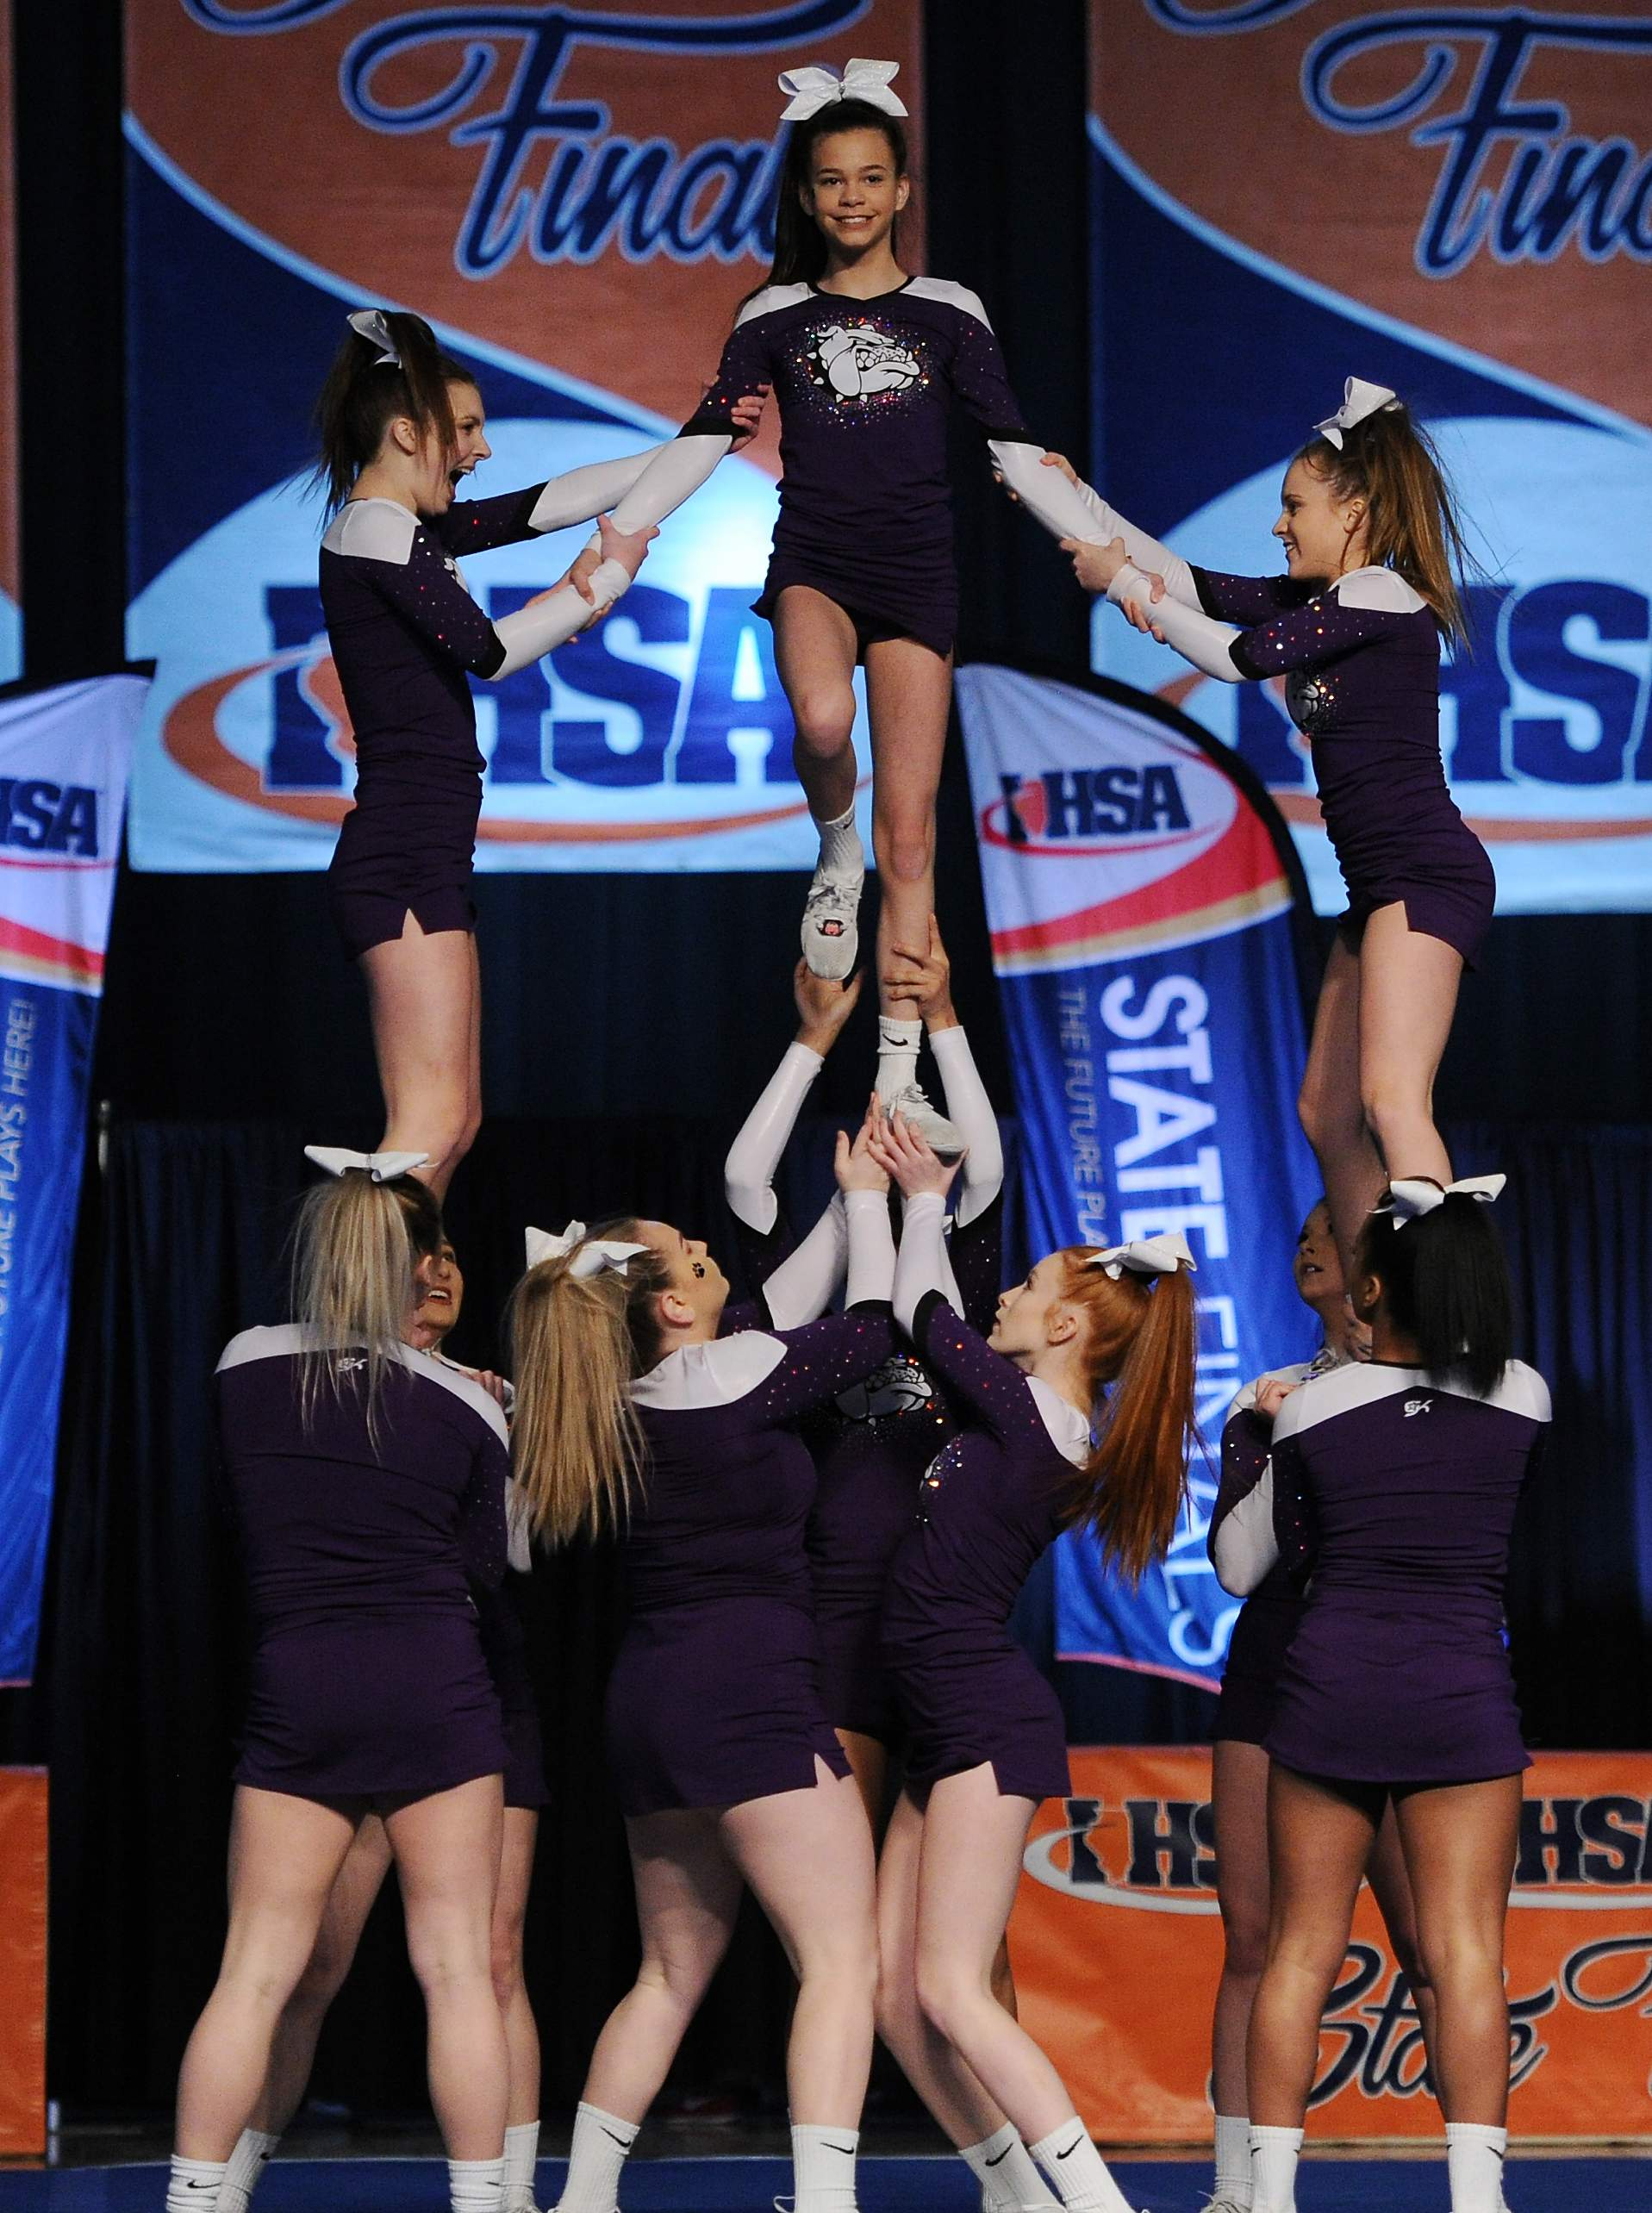 Harrisburg small team division of the girls state cheerleading prelims do their routine in Bloomington on Friday. See the full story on page 6.